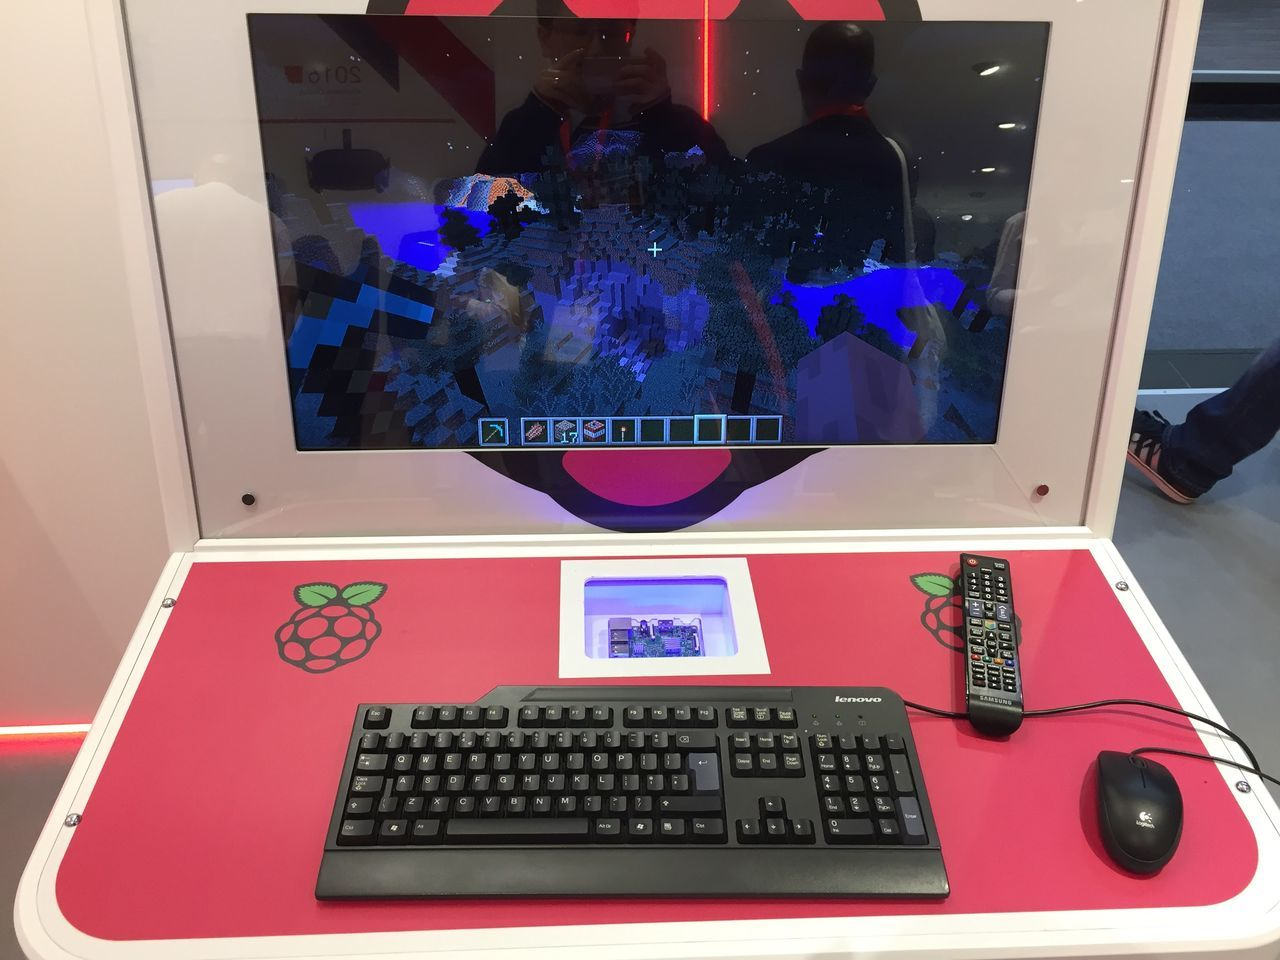 Big Brother - Orwellian Concept Computer Computer Keyboard Computer Monitor No People Technology